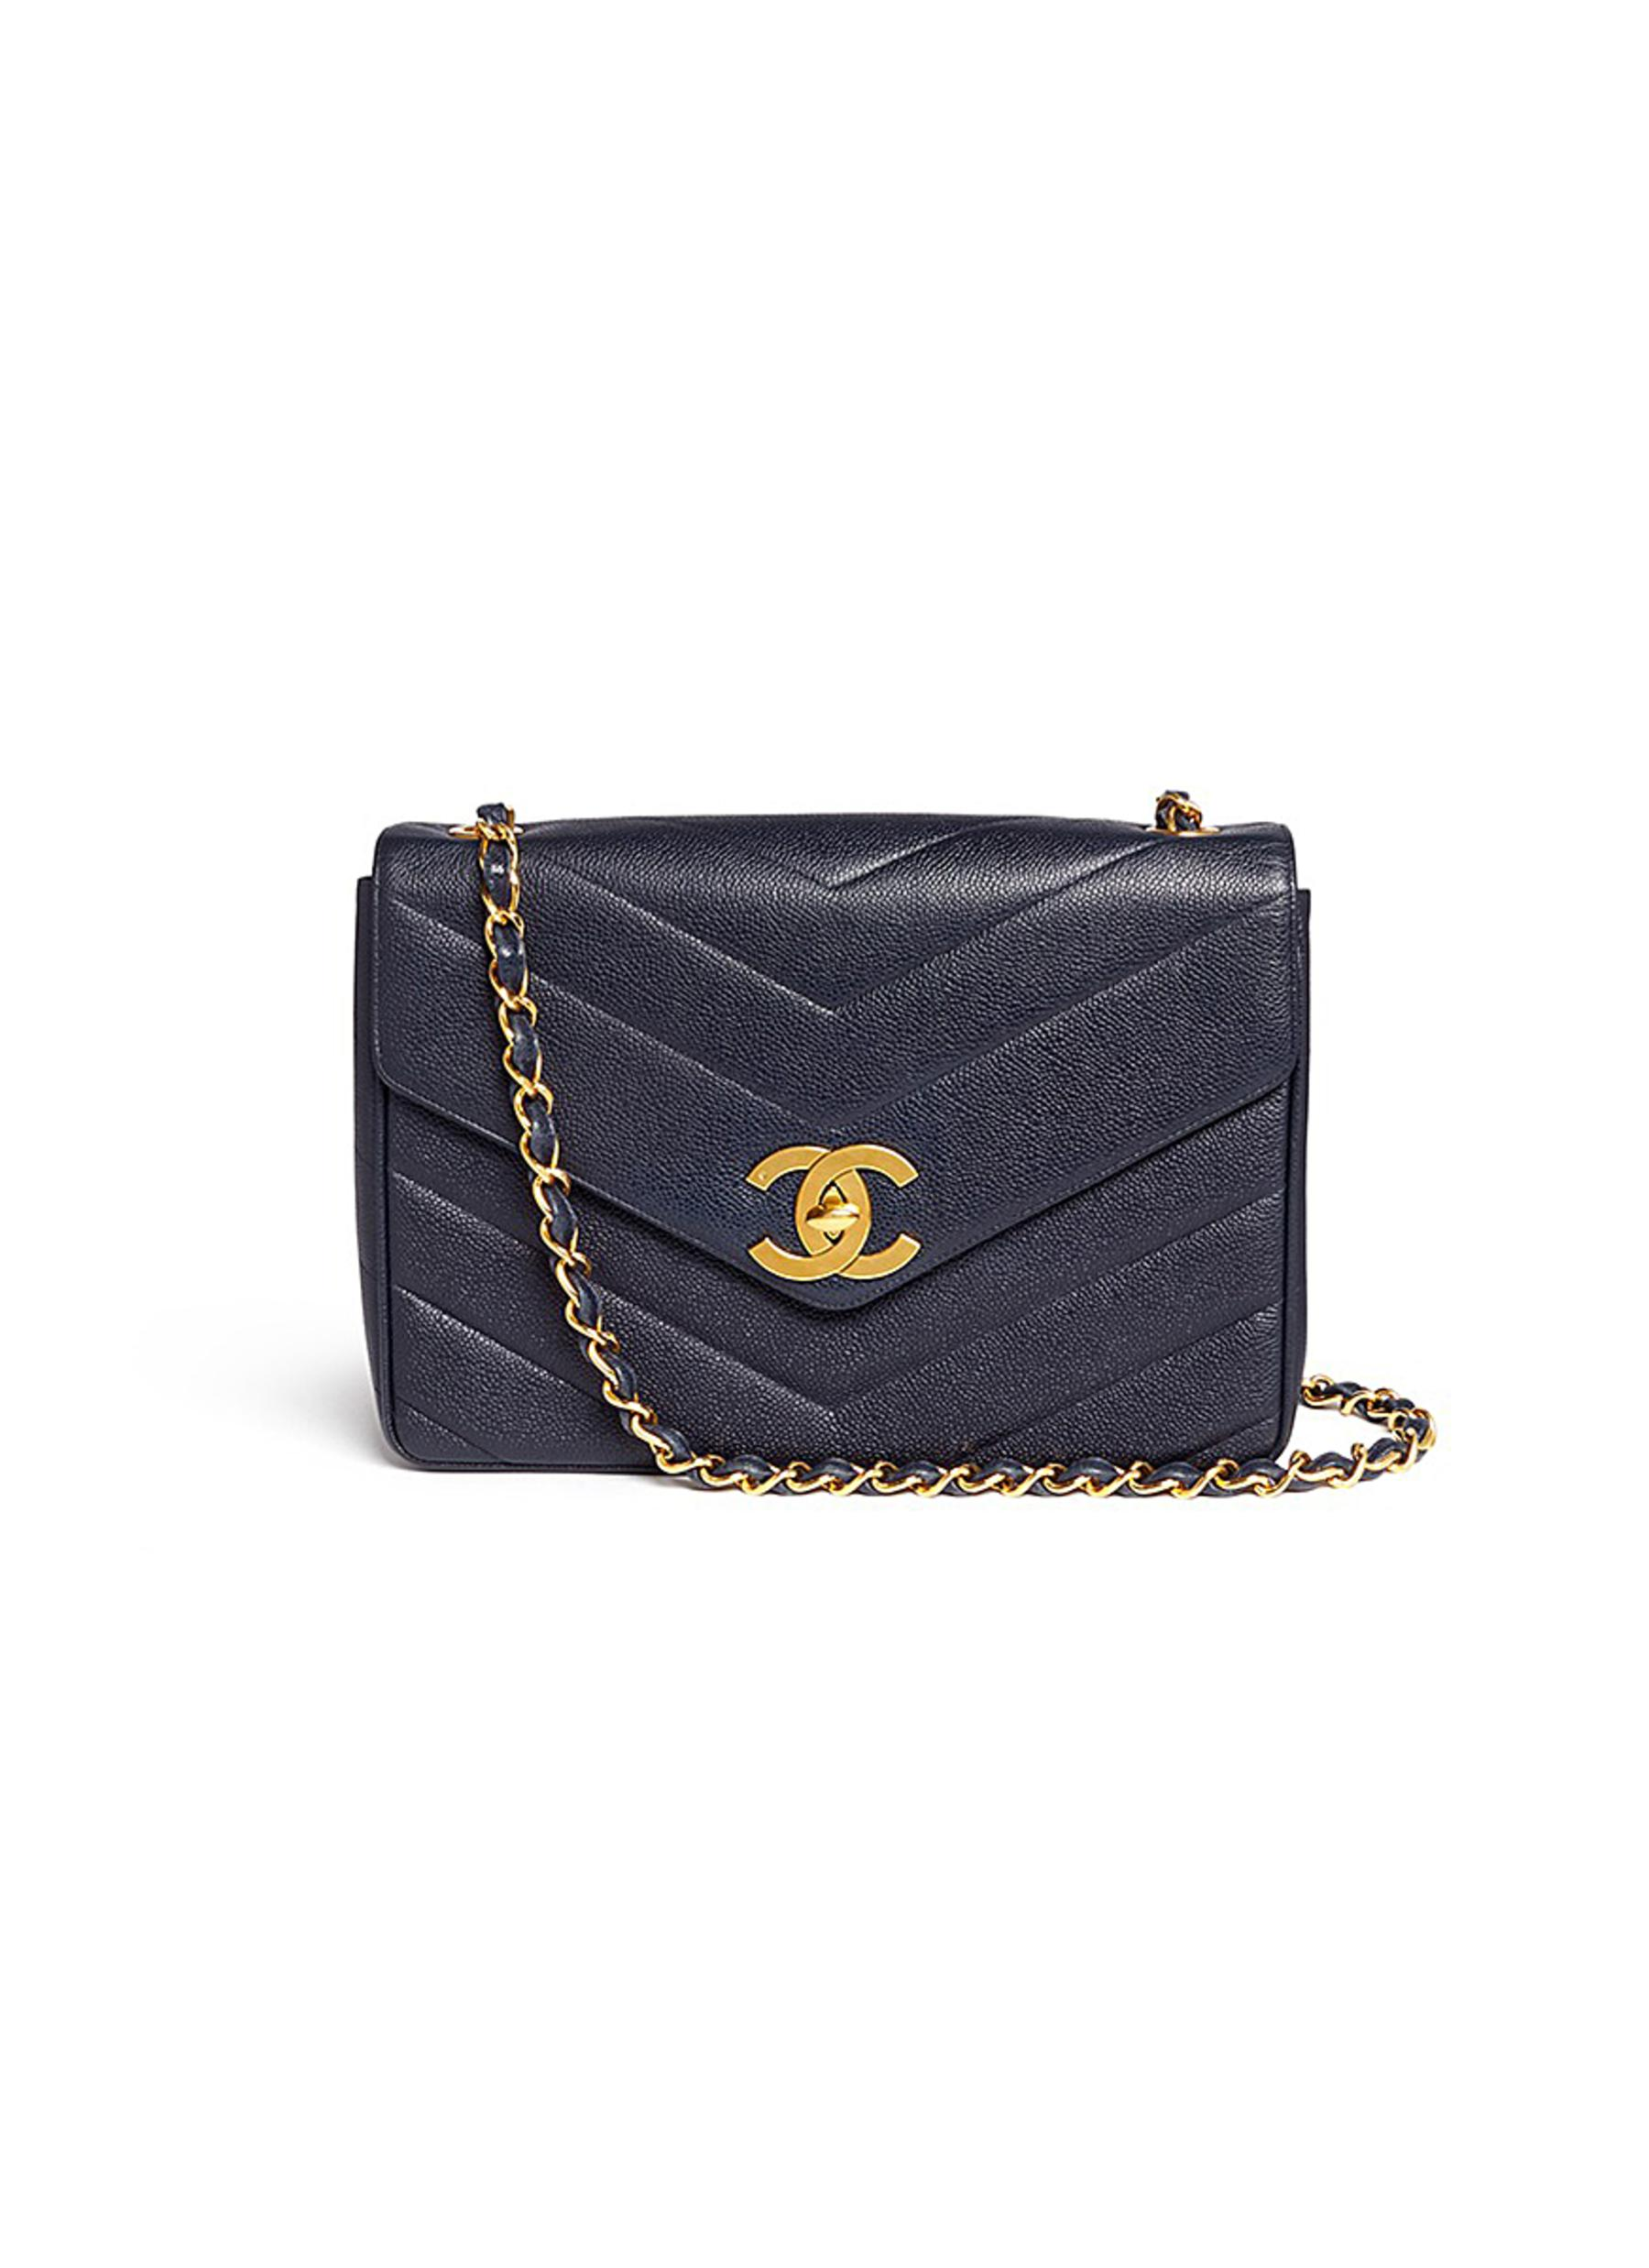 Jumbo chevron quilted caviar leather flap bag by Vintage Chanel